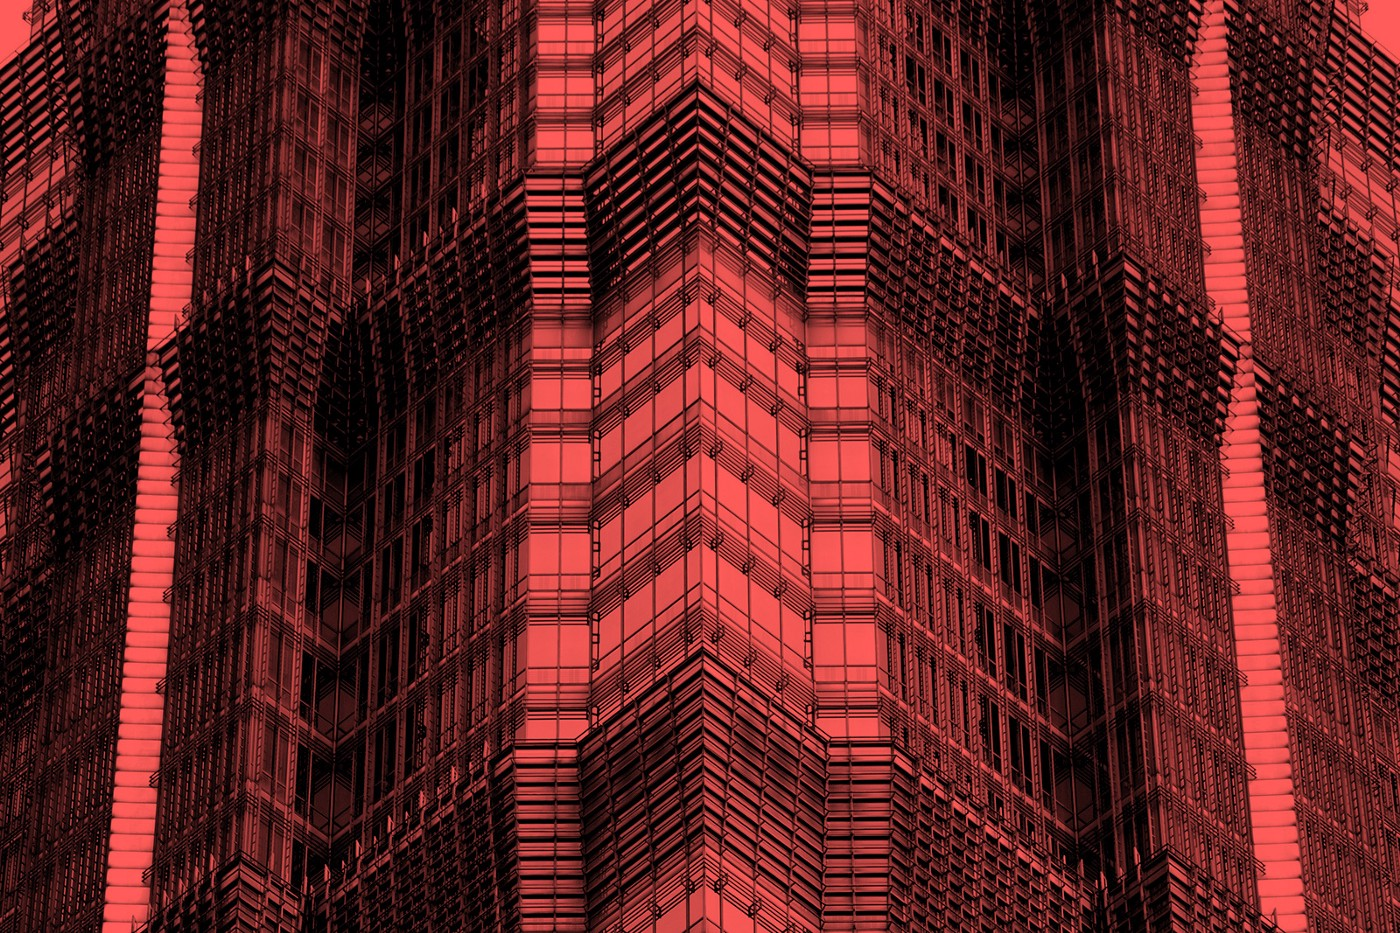 Close up of a geometric skyscraper's corner overlaid with a red filter.